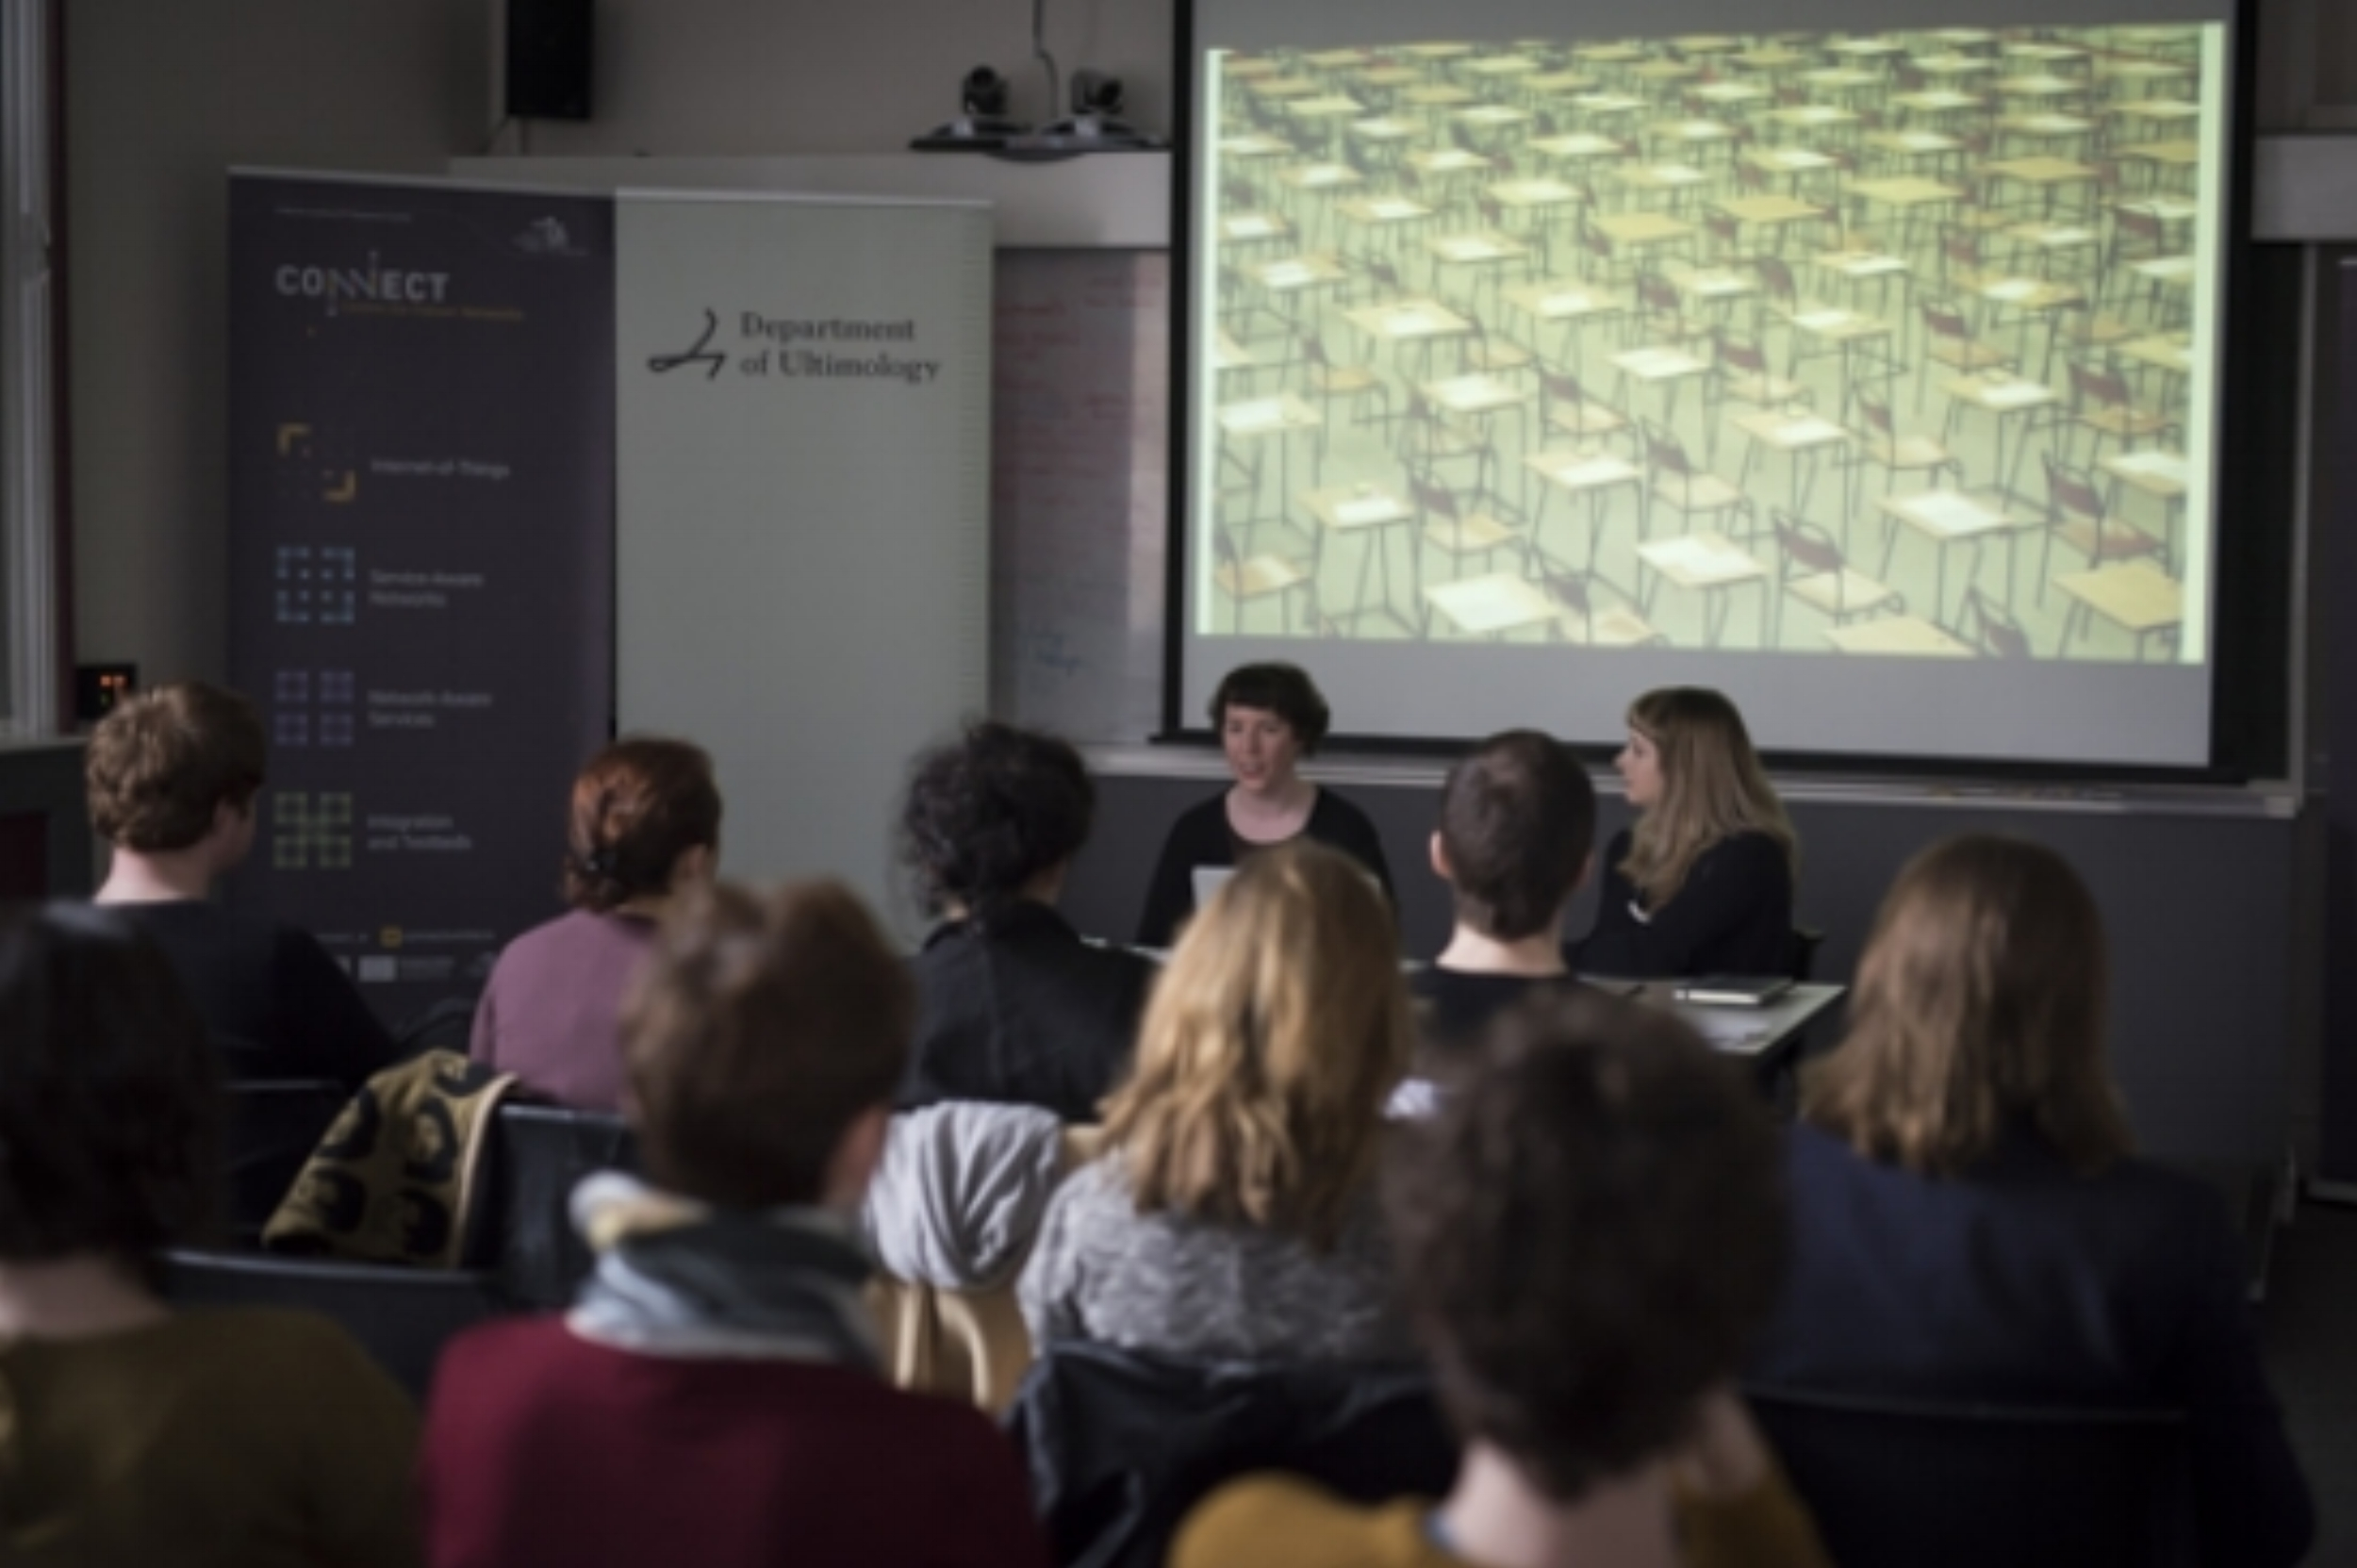 Department of Ultimology Programme Launch, February 20, 2017, CONNECT. Photography by Louis Haugh.